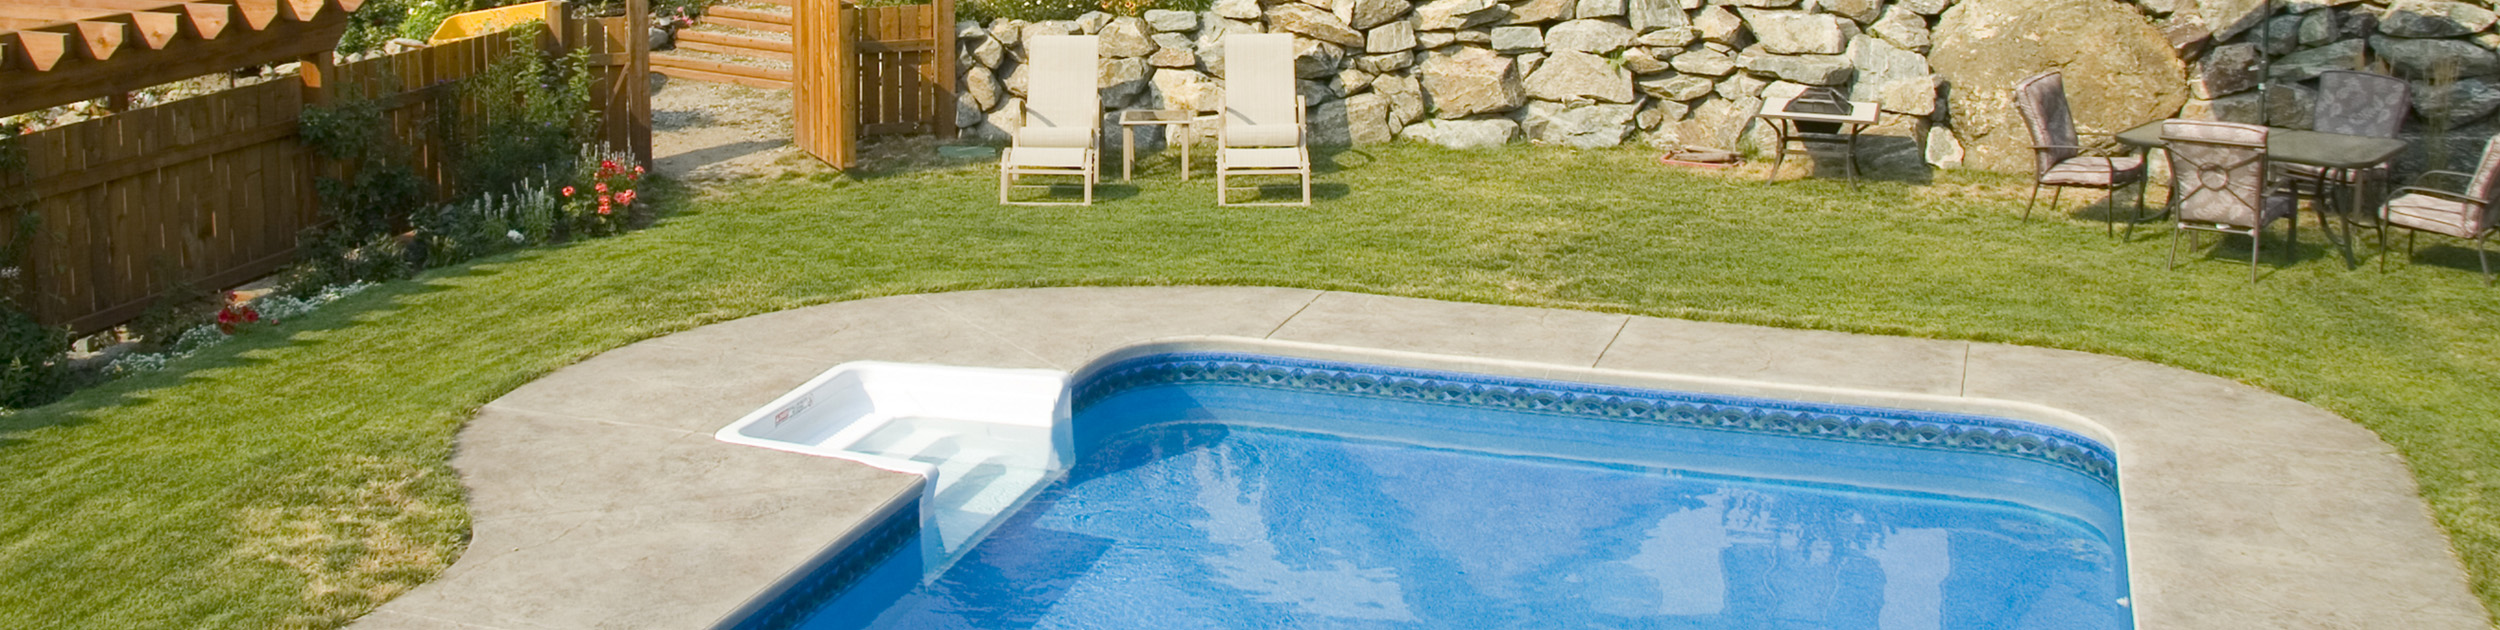 view of backyard with built in swimming pool, lawn furniture and stone wall